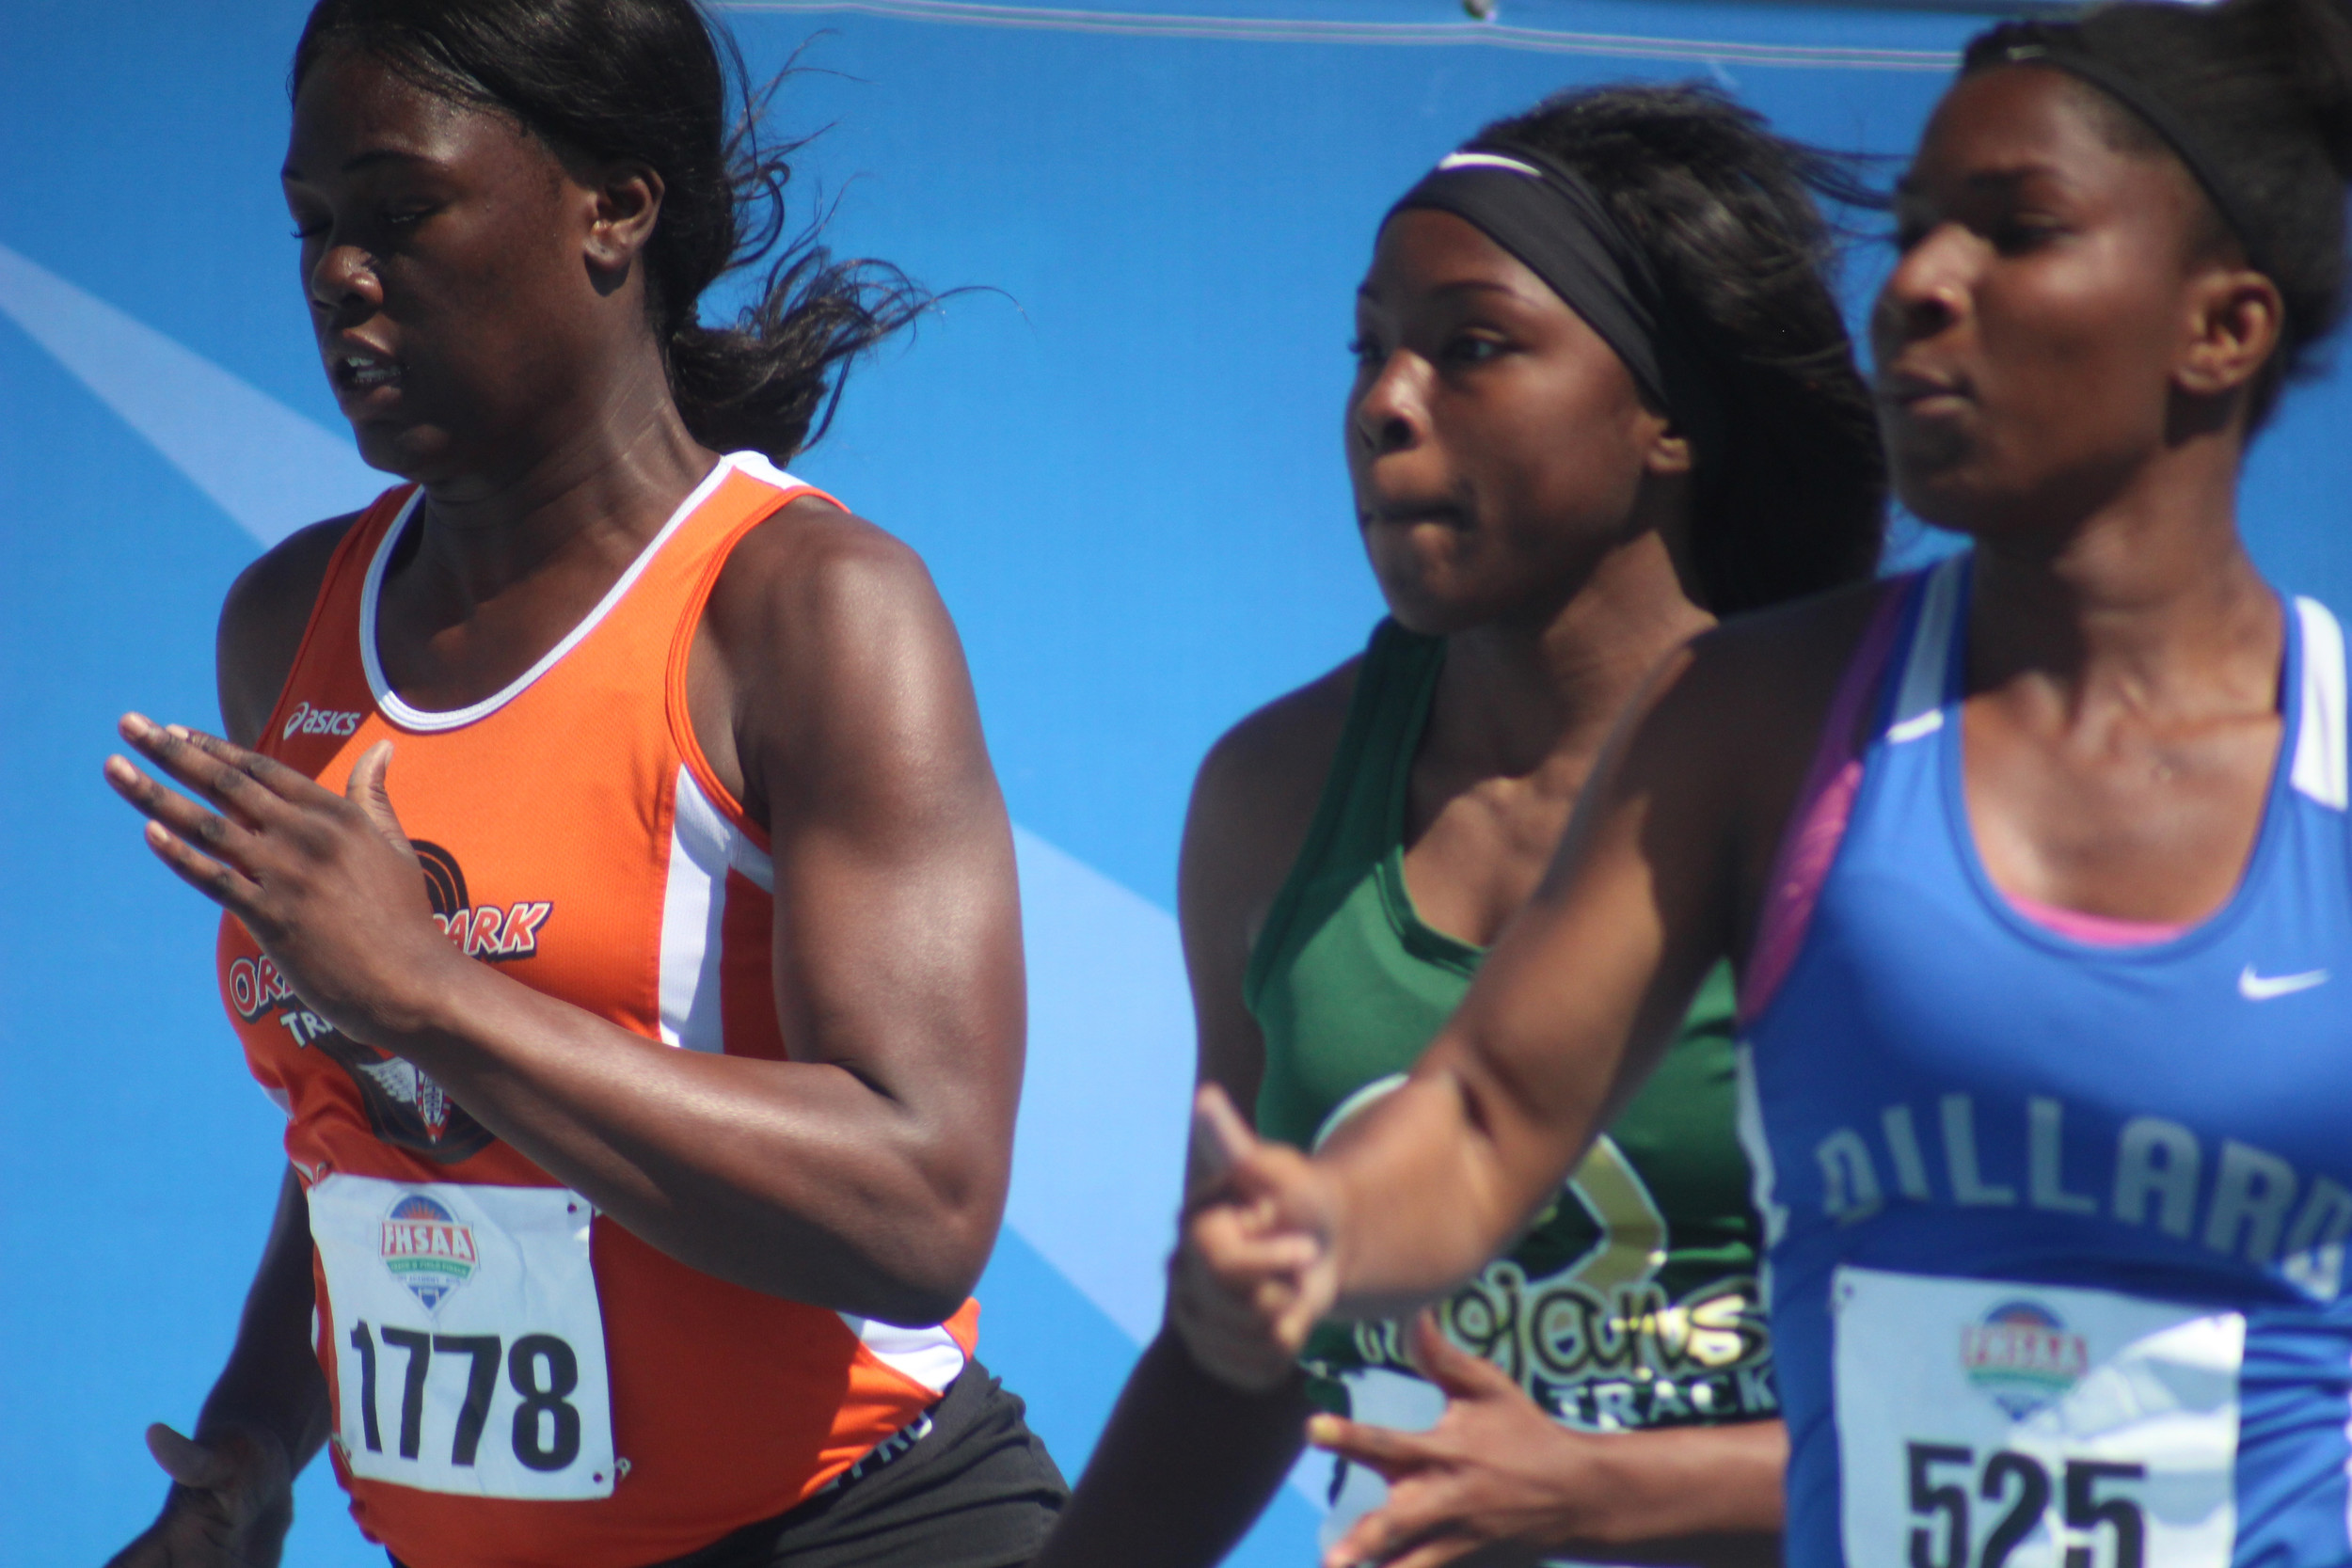 Orange Park High sprinter Candice Childs ran a 12.75 in her preliminary heat of the Class 3A 100 meter dash to finish 12th overall with winner Twanisha Terry of Miami Northwestern winning in 11.72.